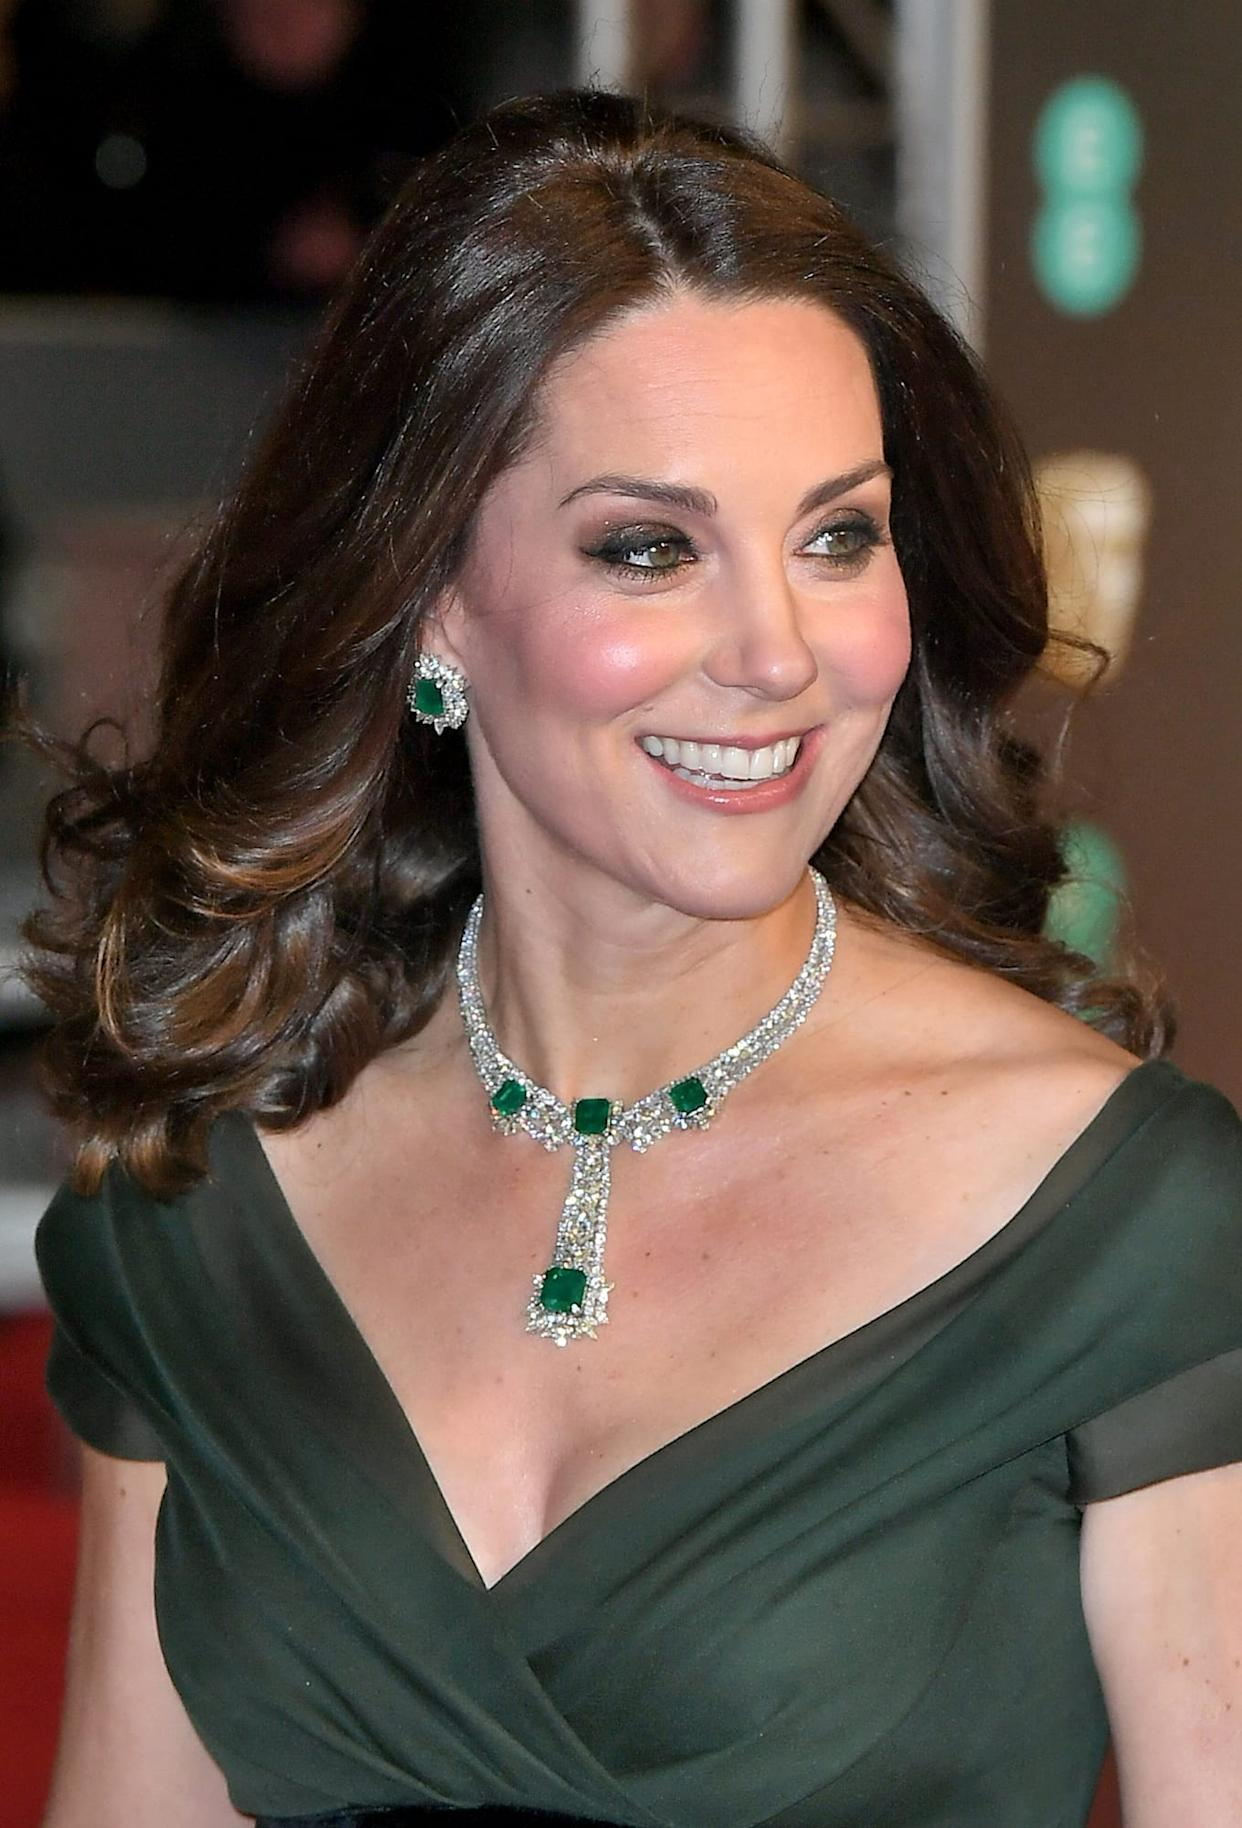 Duchess of Cambridge Kate Middleton BAFTA Awards jewelry